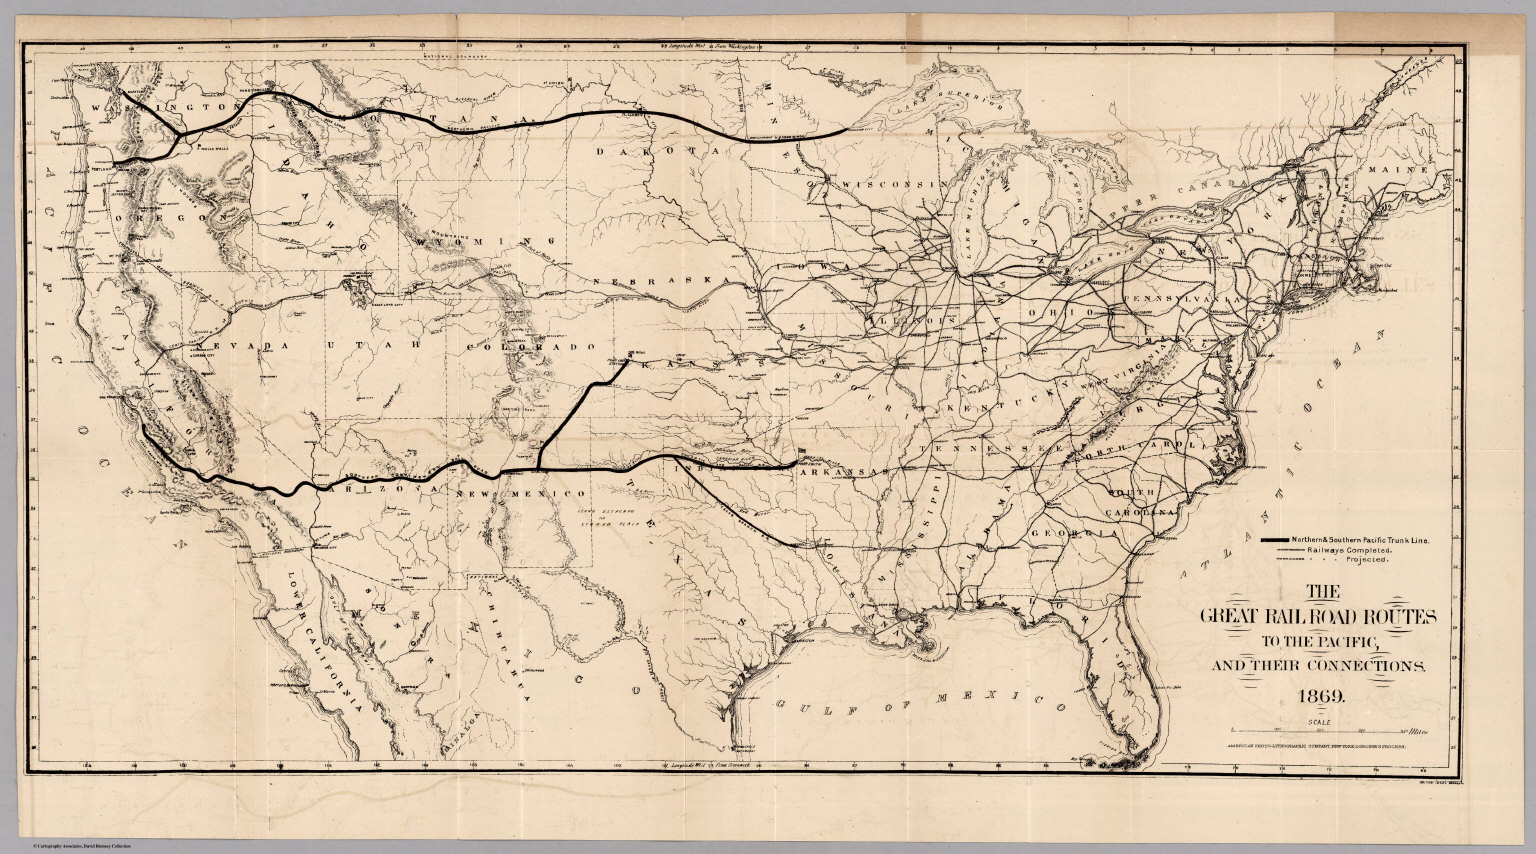 Union Pacific Railroad History Map Railroad Routes To The Pacific   David Rumsey Historical Map